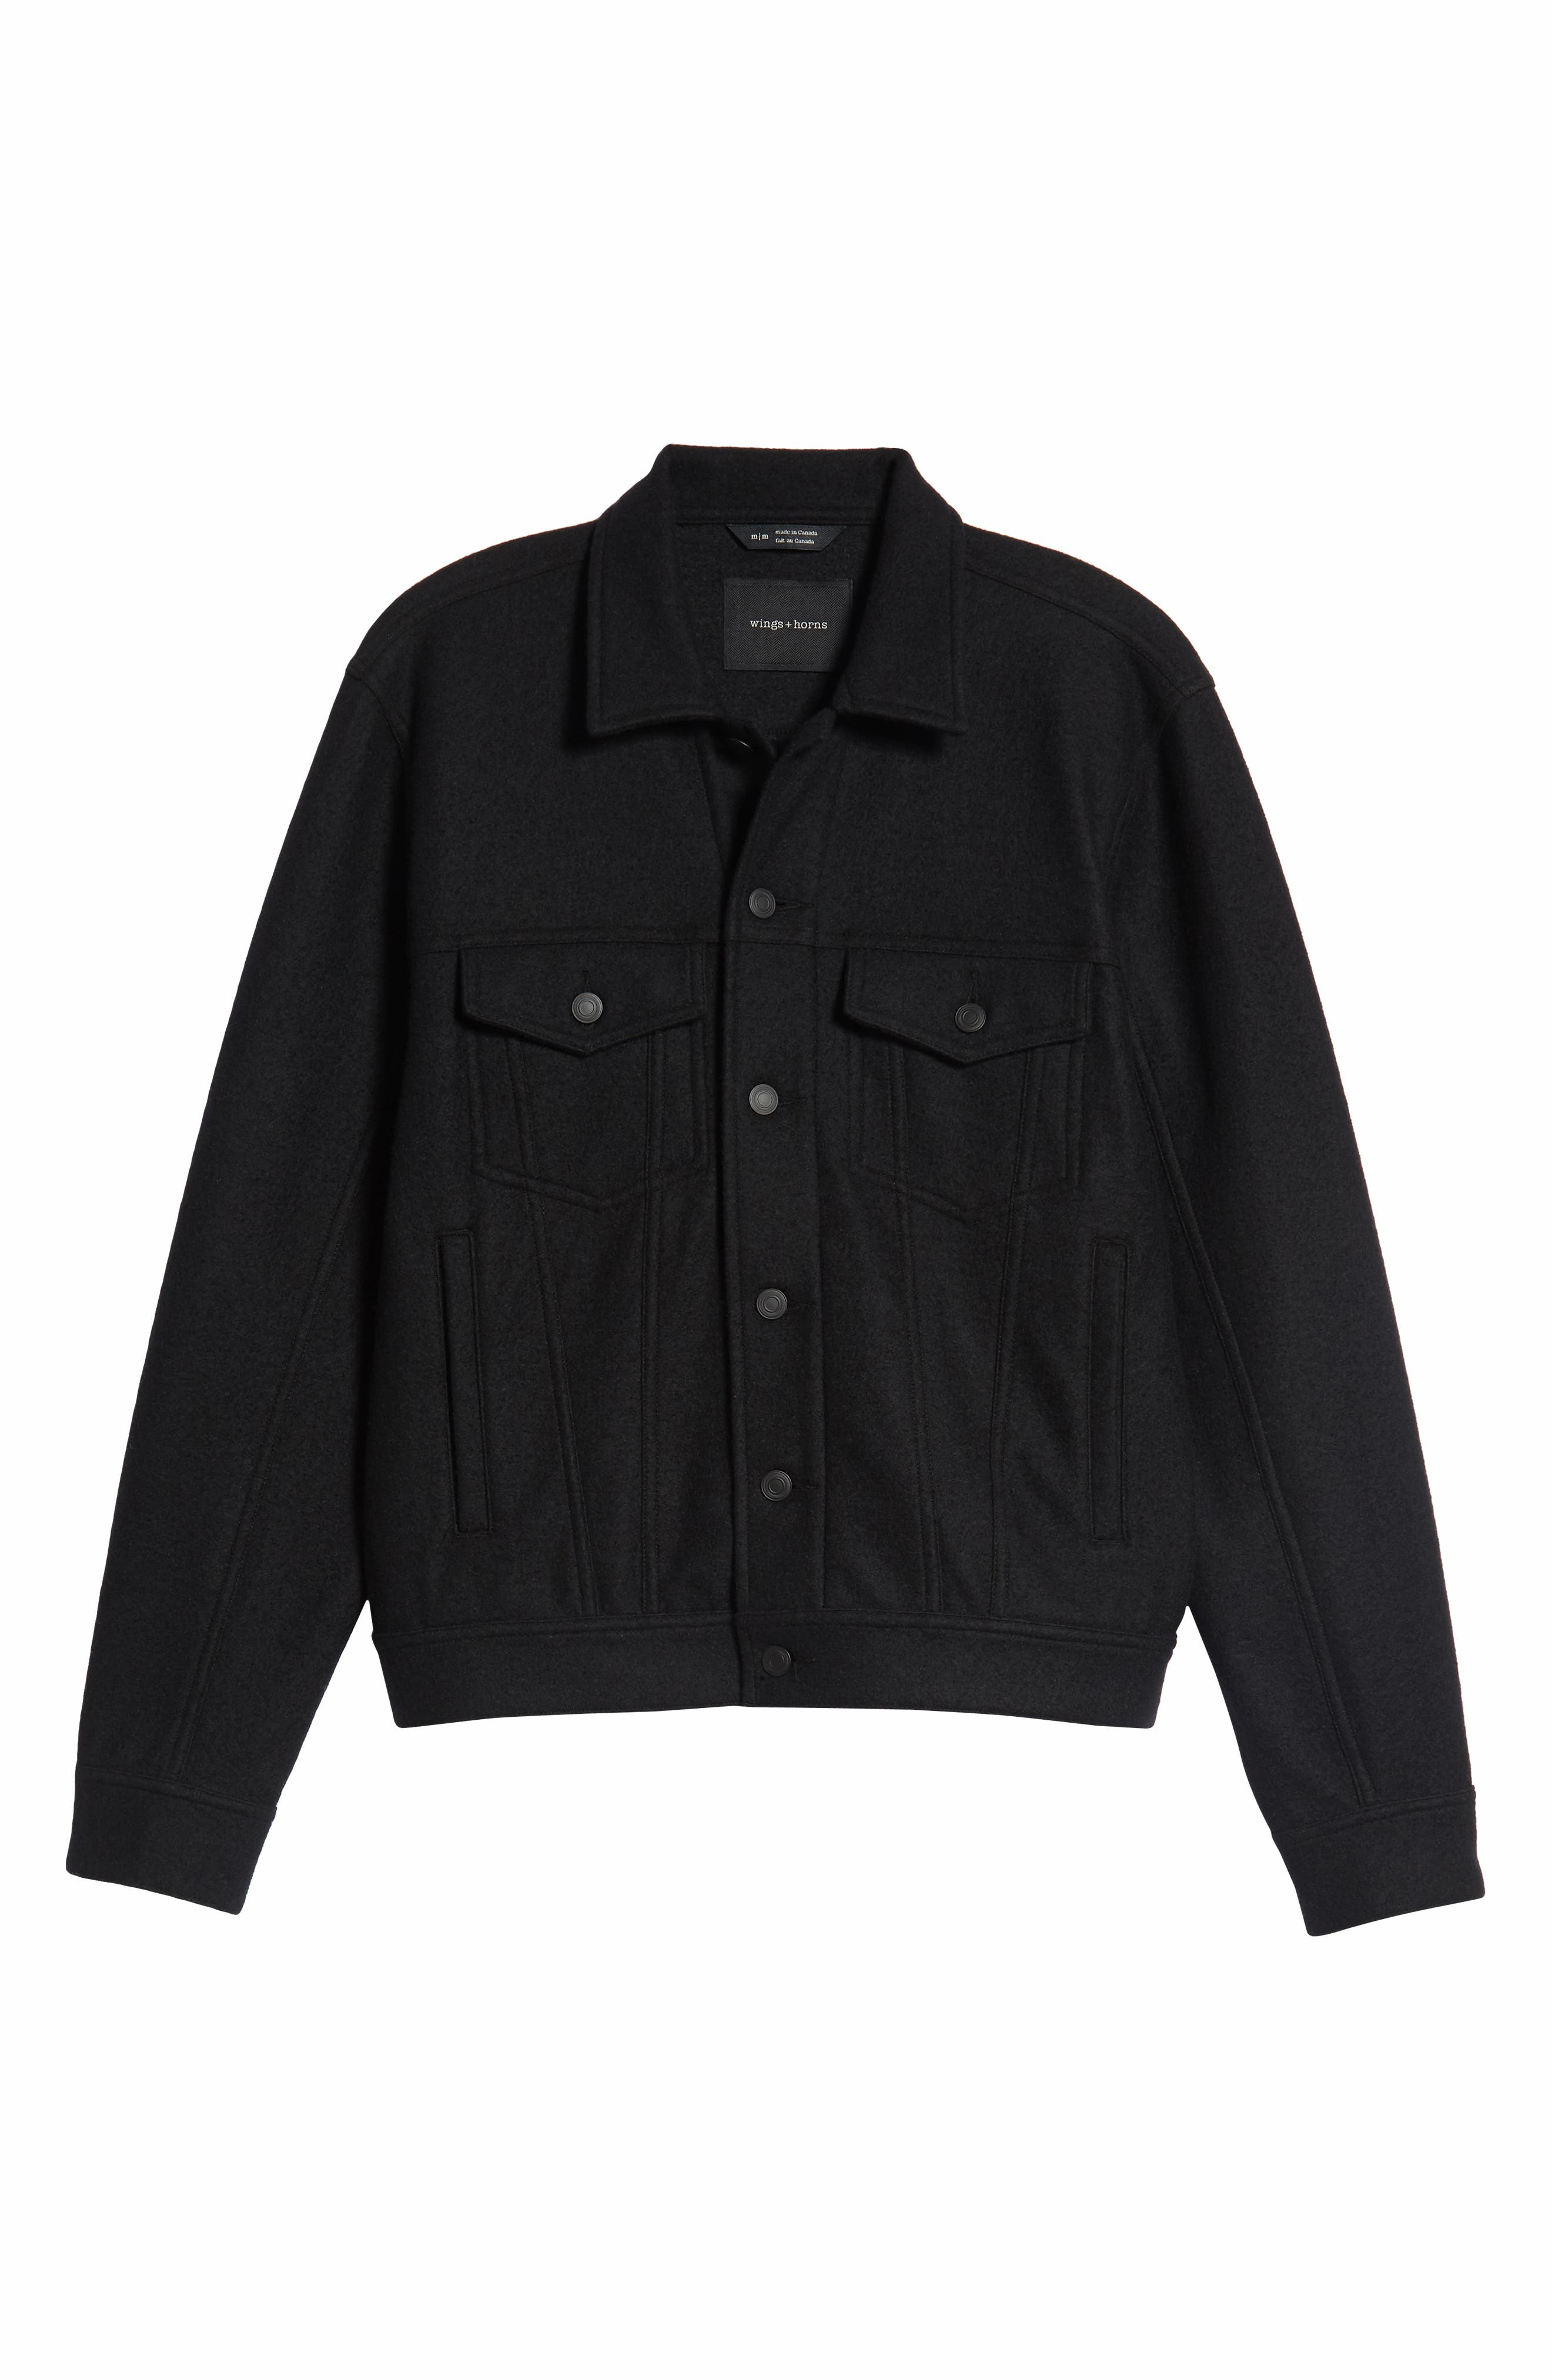 Wool Blend Trucker Jacket,                             Alternate thumbnail 5, color,                             BLACK